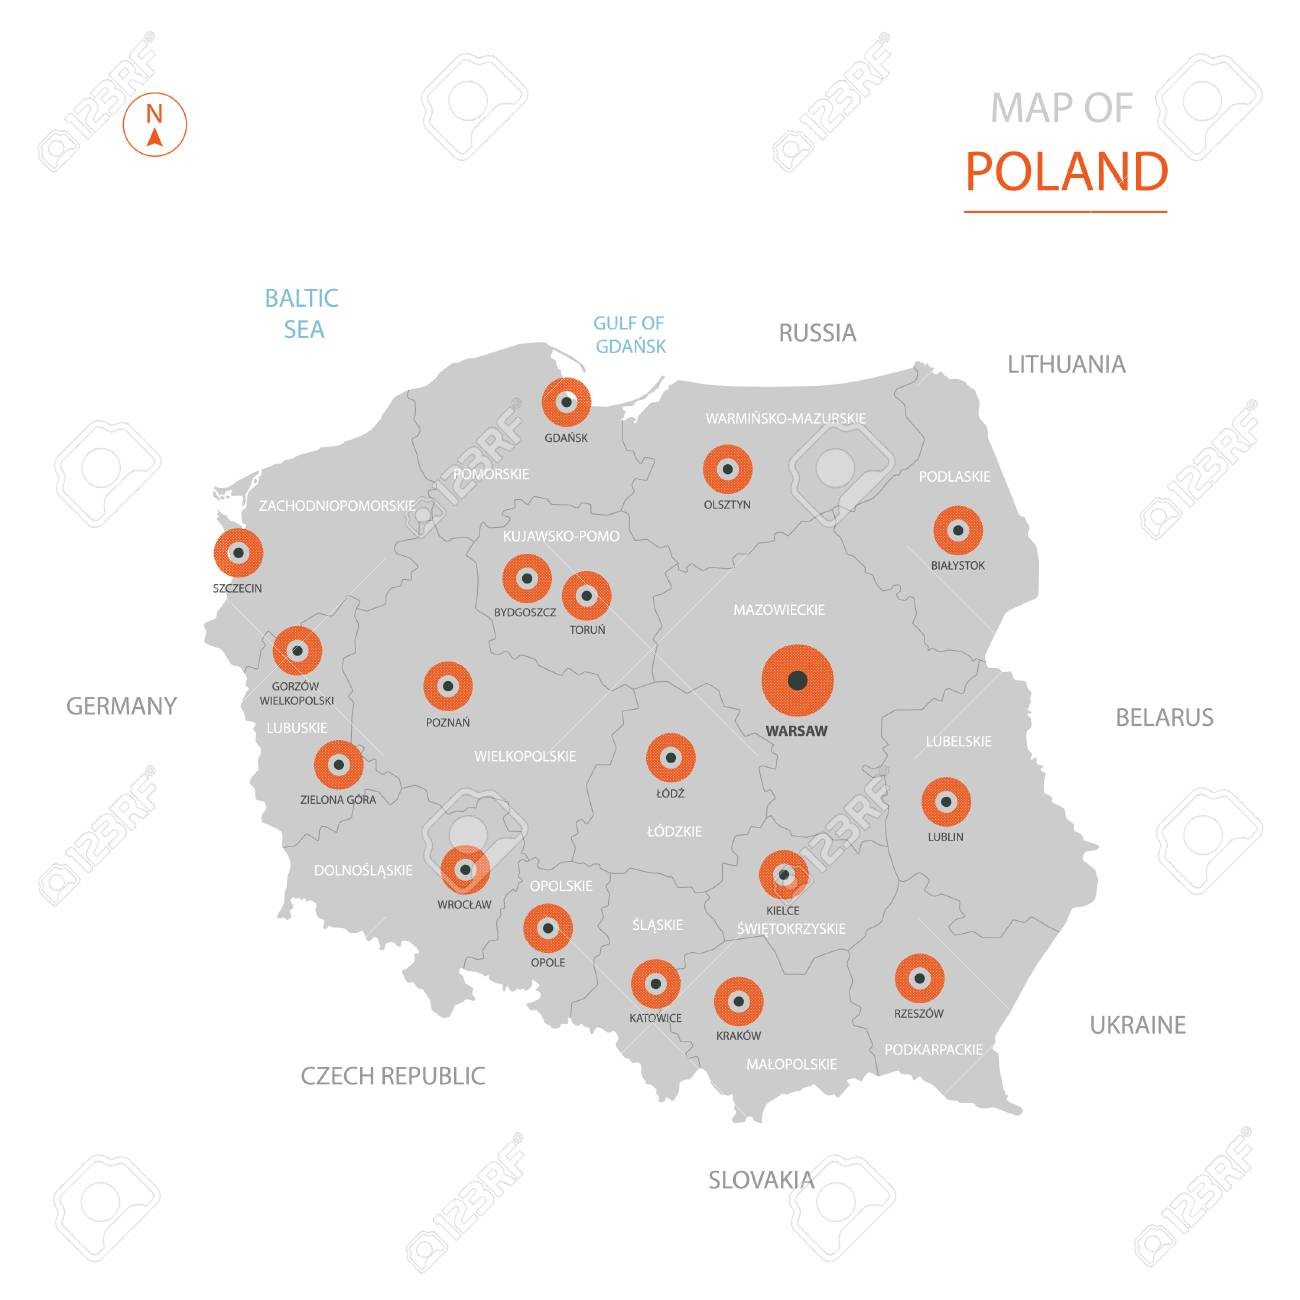 Capital Of Poland Map.Stylized Vector Poland Map Showing Big Cities Capital Warsaw